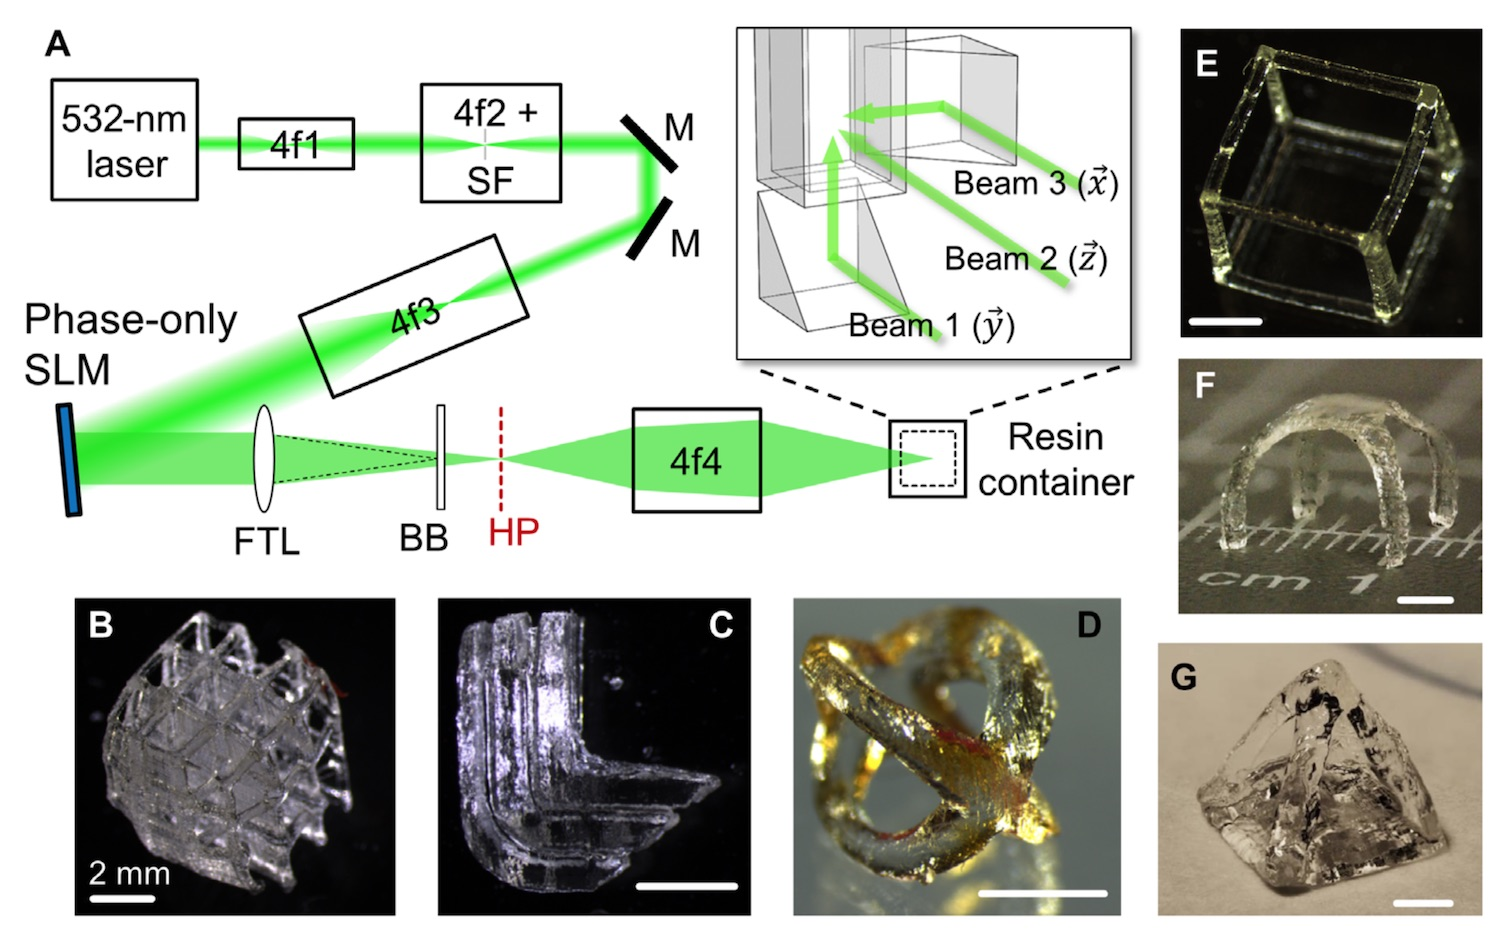 hight resolution of this figure from the paper shows the lensing and holographic setup as well as several examples of shapes printed using the technique